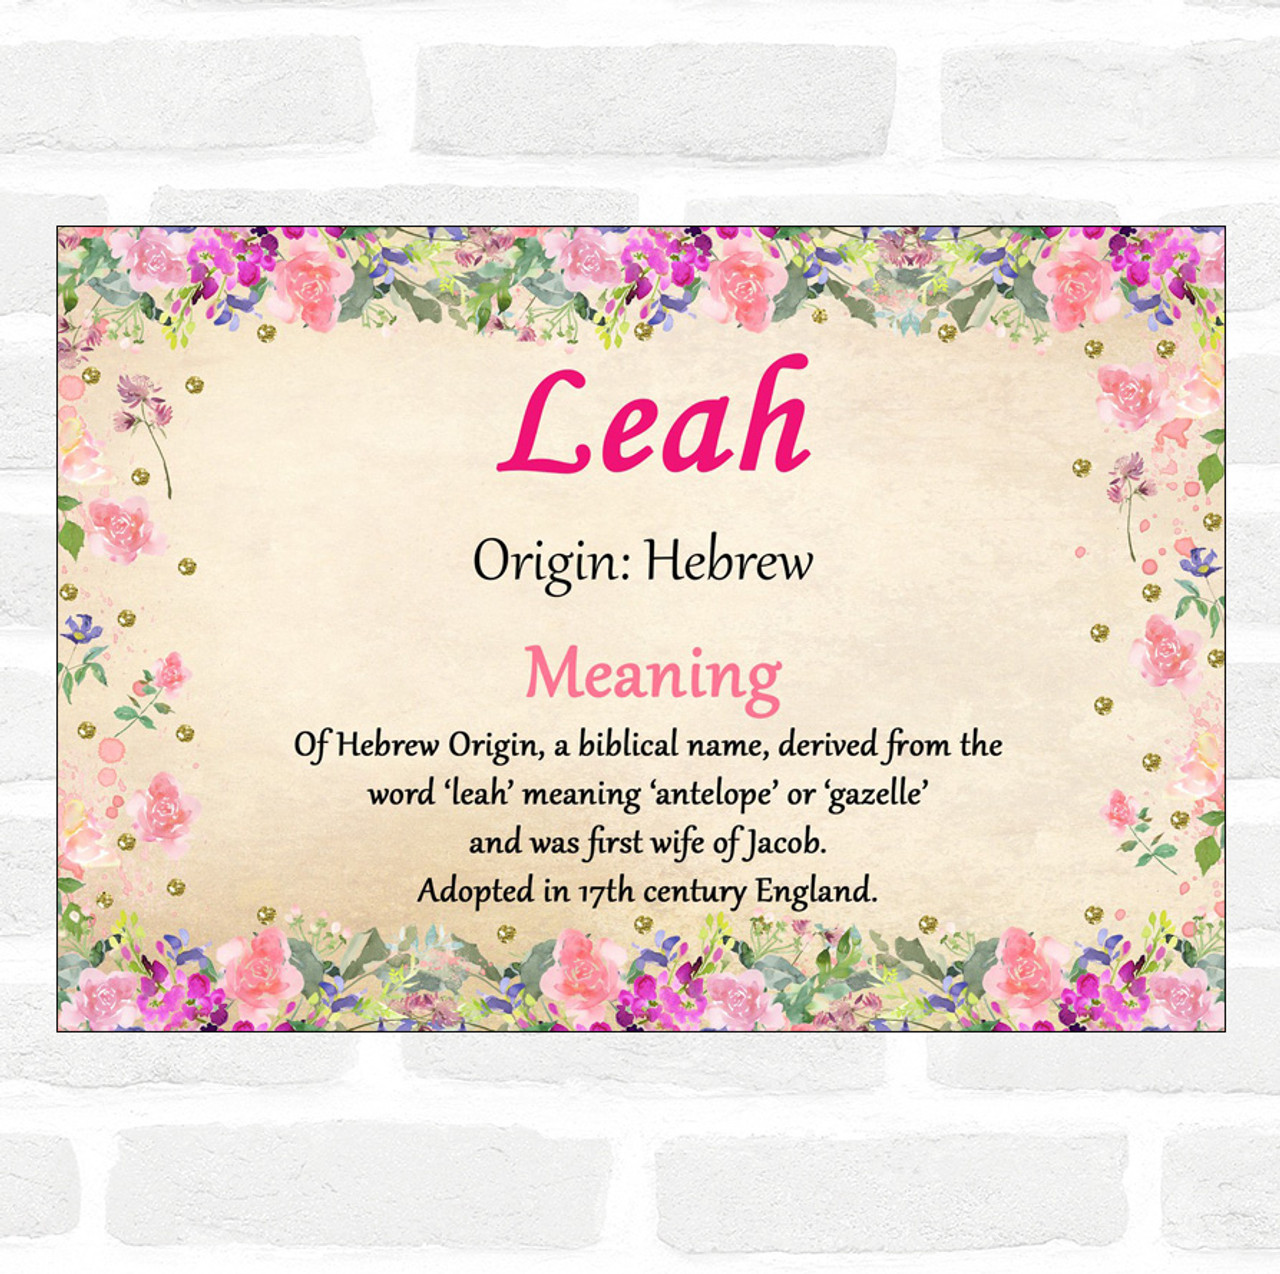 Image ID: The name Leah written in cursive over a floral background. The text beneath reads: Origin: Hebrew. Meaning: Of Hebrew origin, a biblical name, derived from the word leah meaning antelope or gazelle and first wife of Jacob. Adopted in 17th century England.